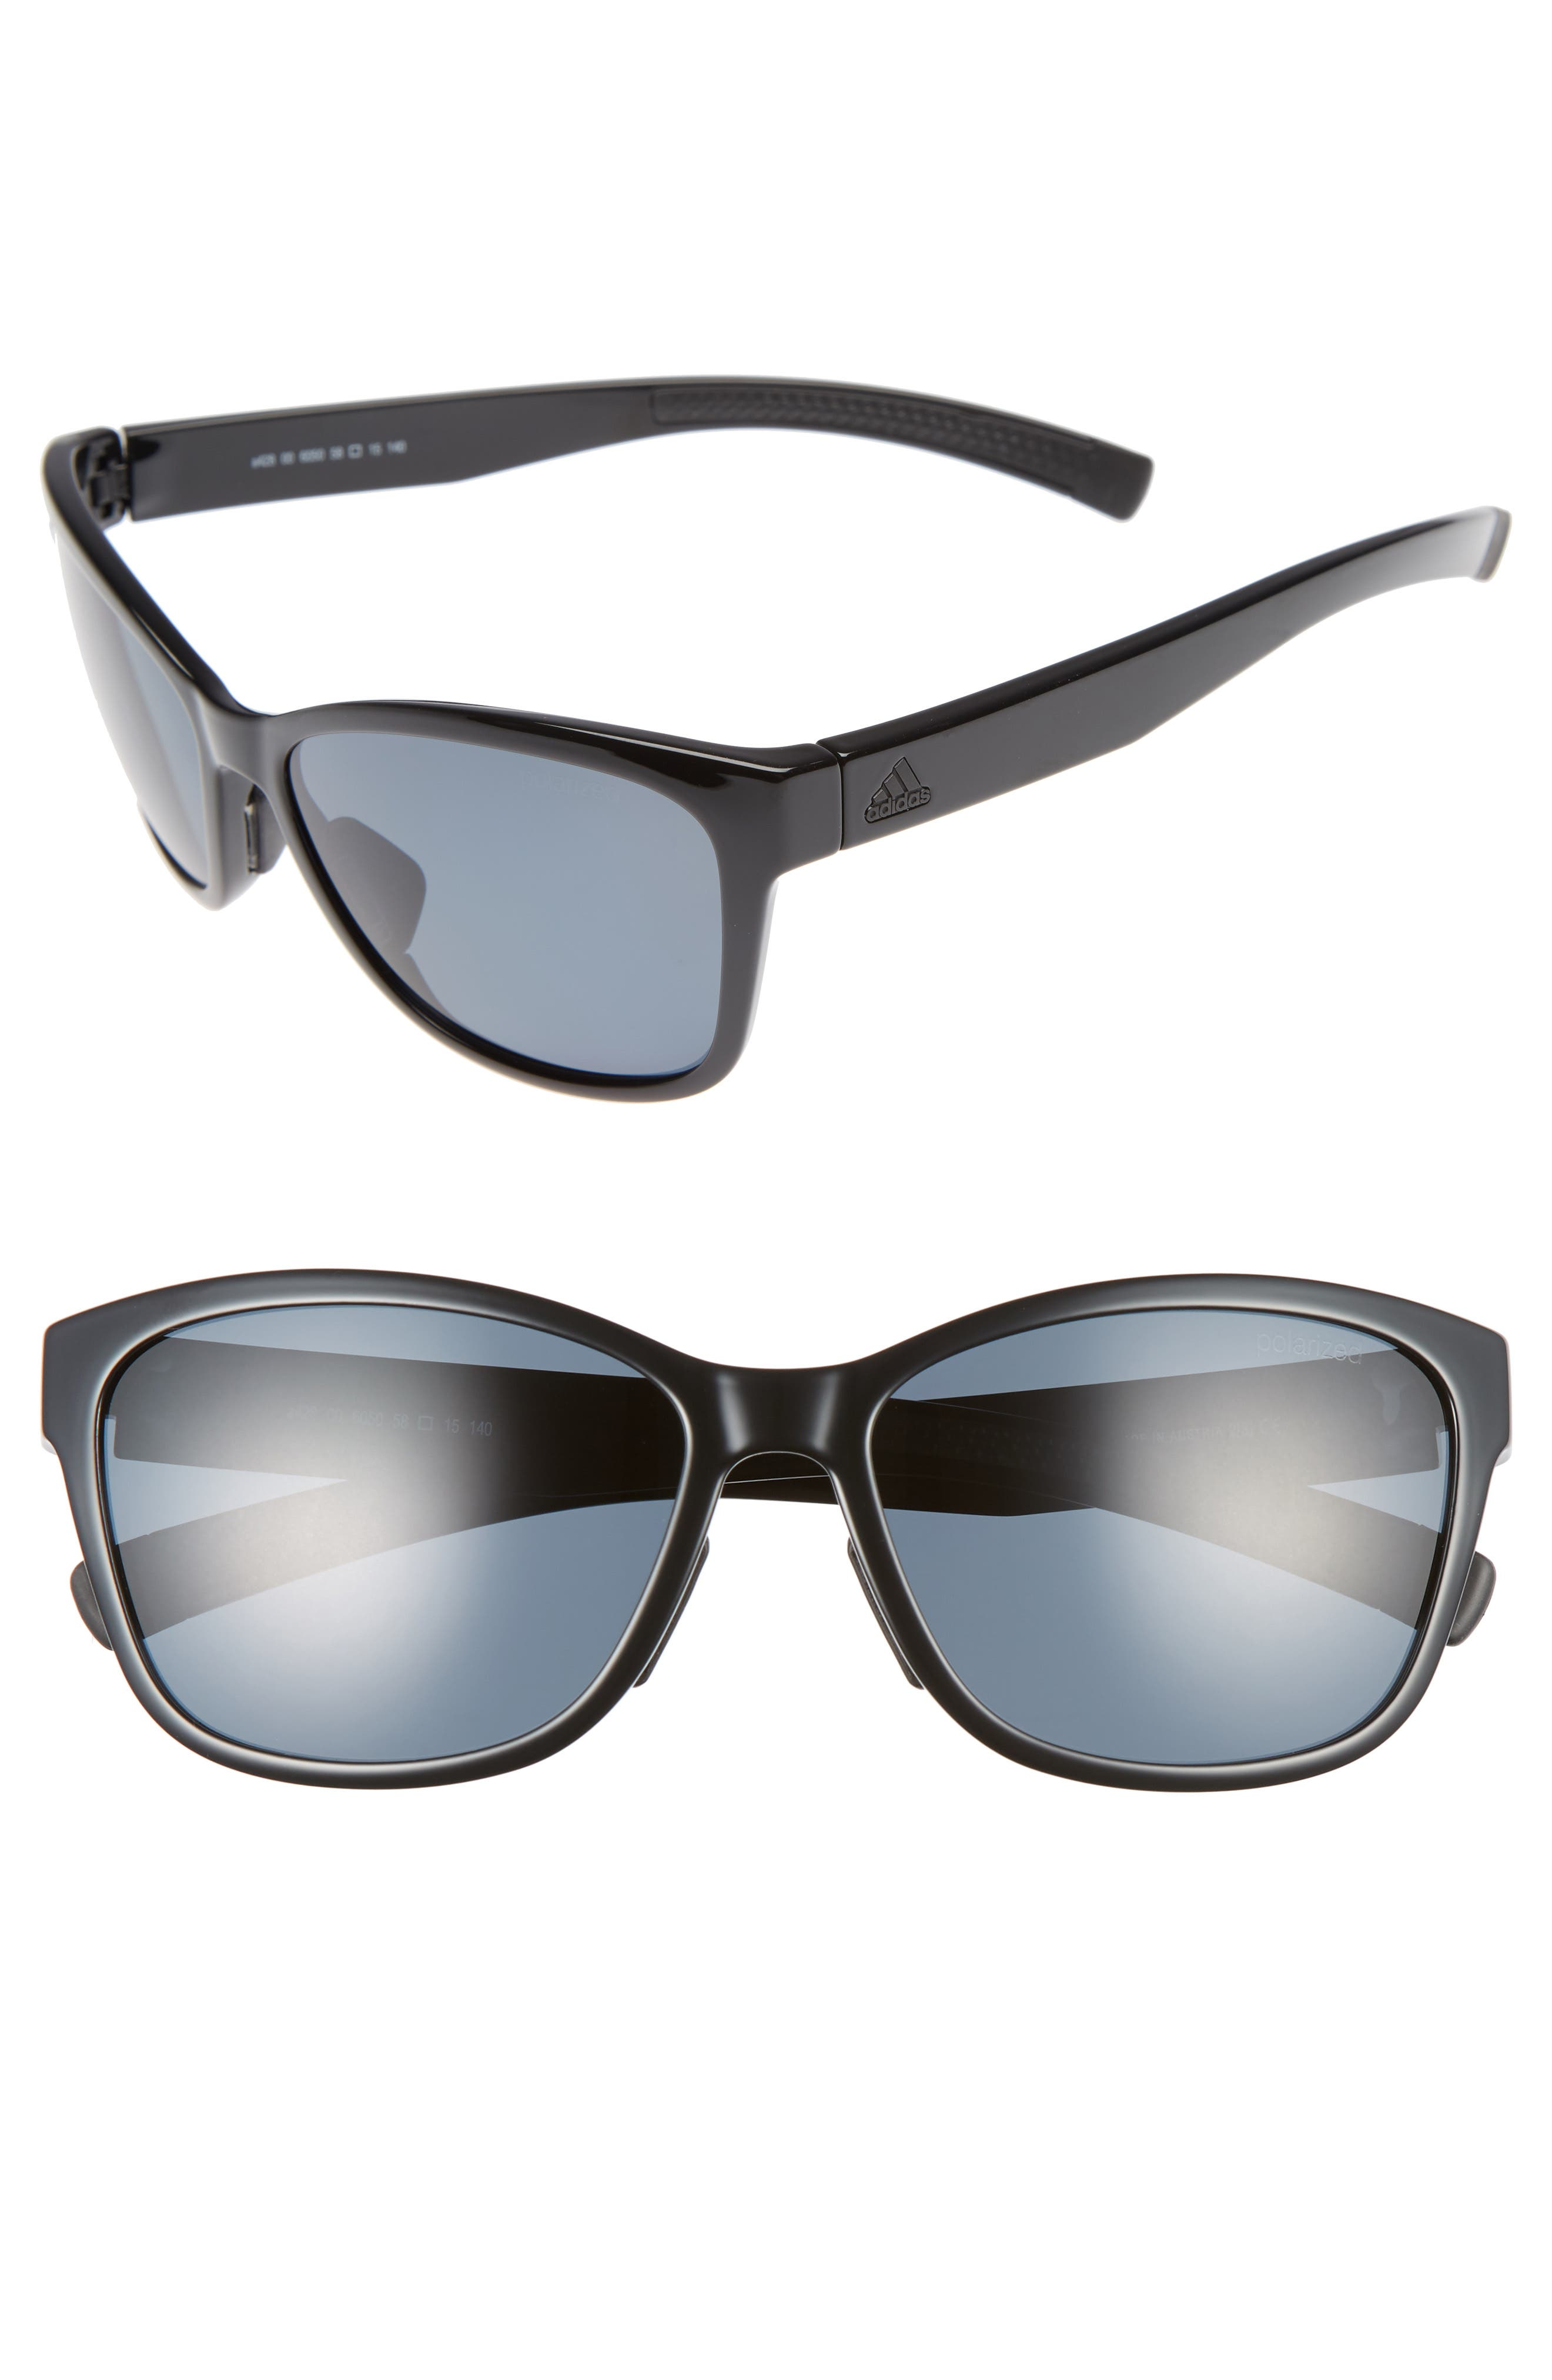 Excalate 58mm Polarized Sunglasses,                         Main,                         color, 001